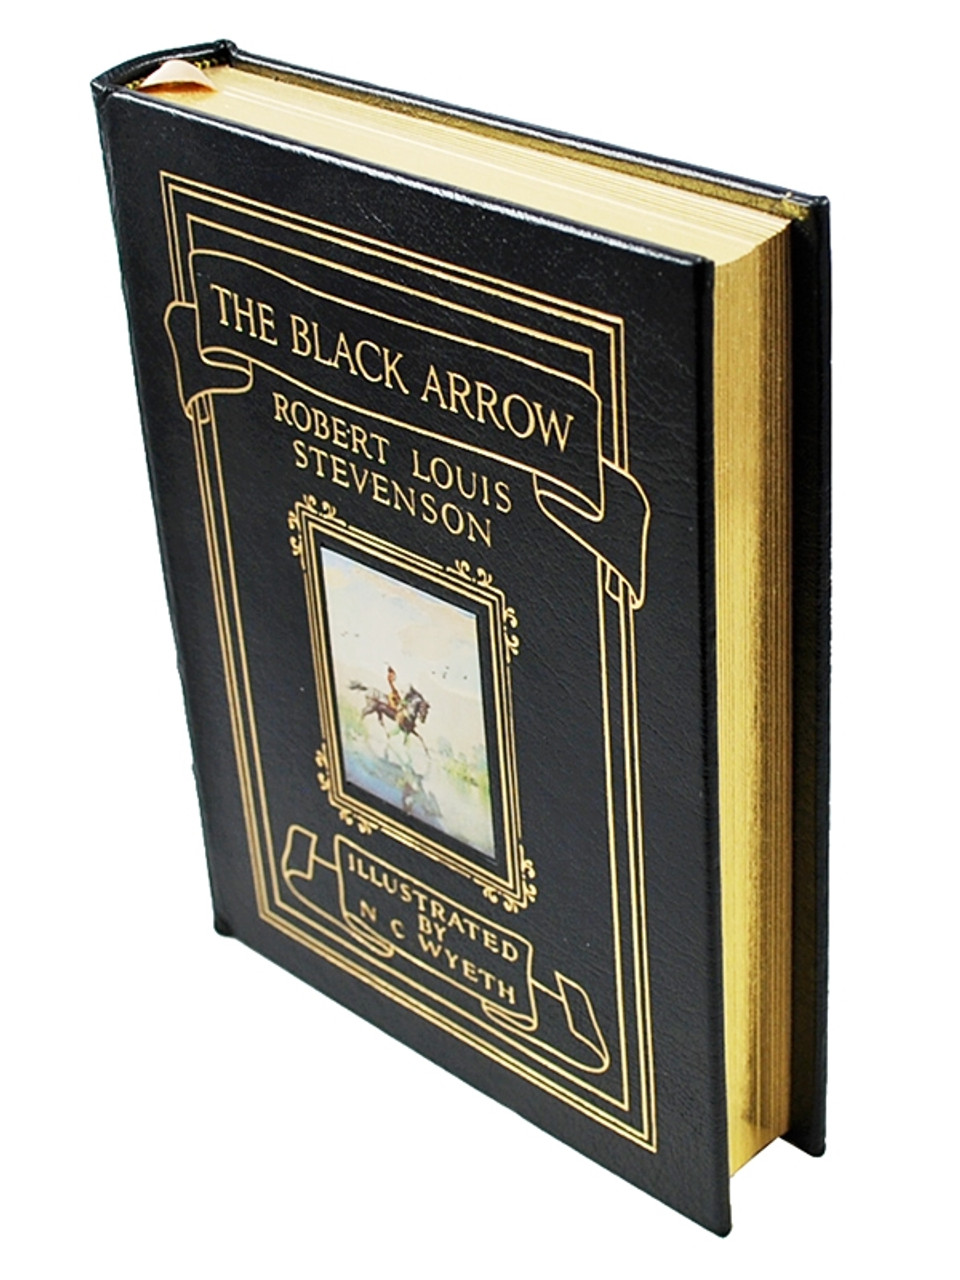 Easton Press, The Adventure Classics, Illustrated by N.C. Wyeth, Leather Bound Collector's Editions, 14 Vol. Complete Set [Very Fine]